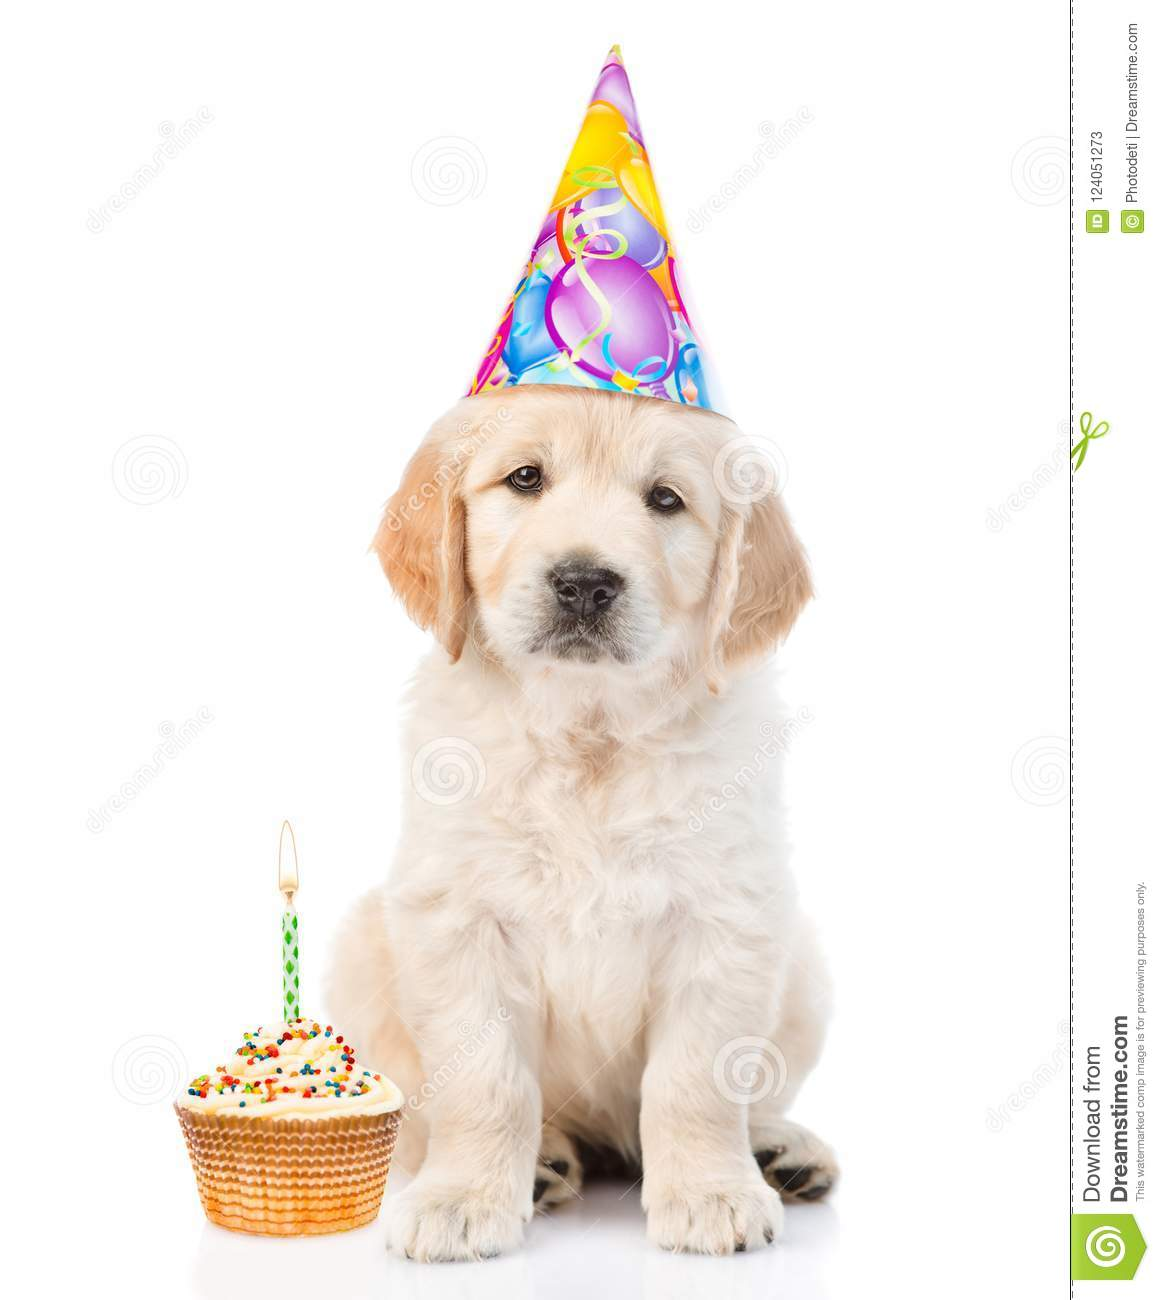 Peachy Golden Retriever Puppy In Birthday Hat With Cake Looking At Camera Funny Birthday Cards Online Fluifree Goldxyz